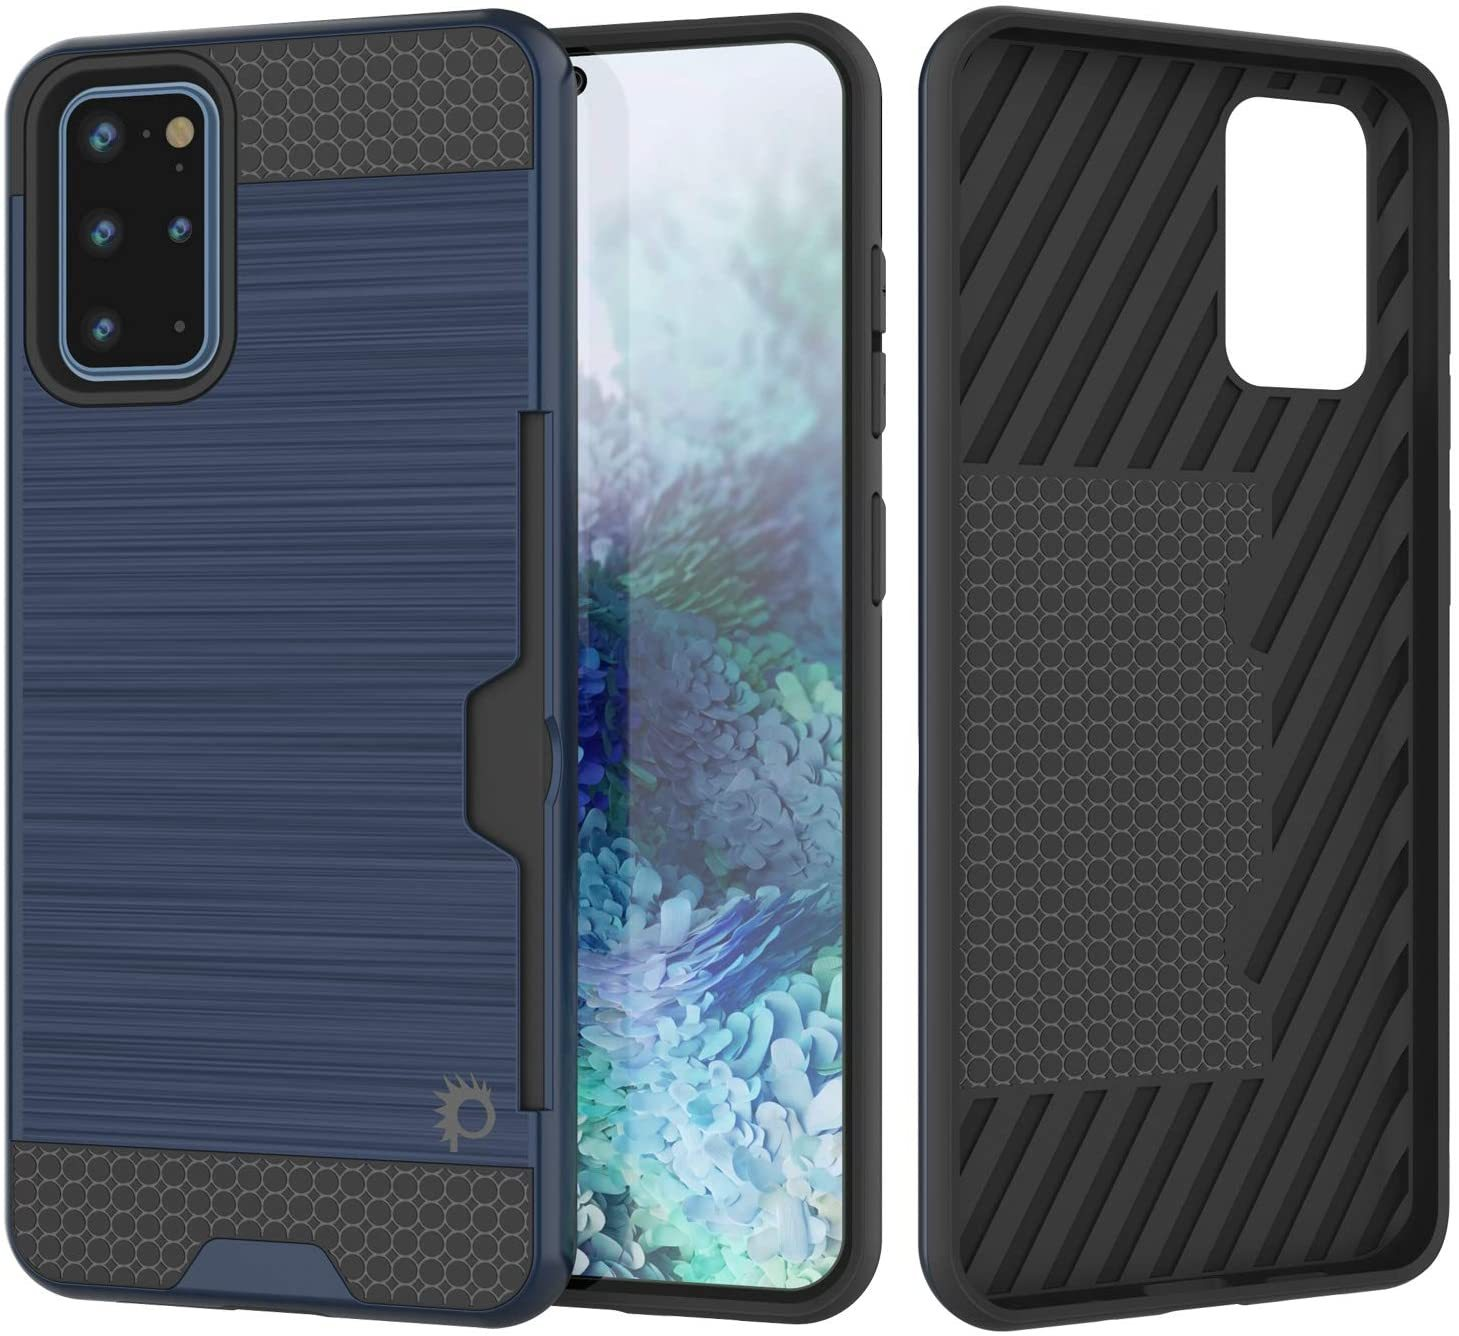 Galaxy S20+ Plus  Case, PUNKcase [SLOT Series] [Slim Fit] Dual-Layer Armor Cover w/Integrated Anti-Shock System, Credit Card Slot [Navy]